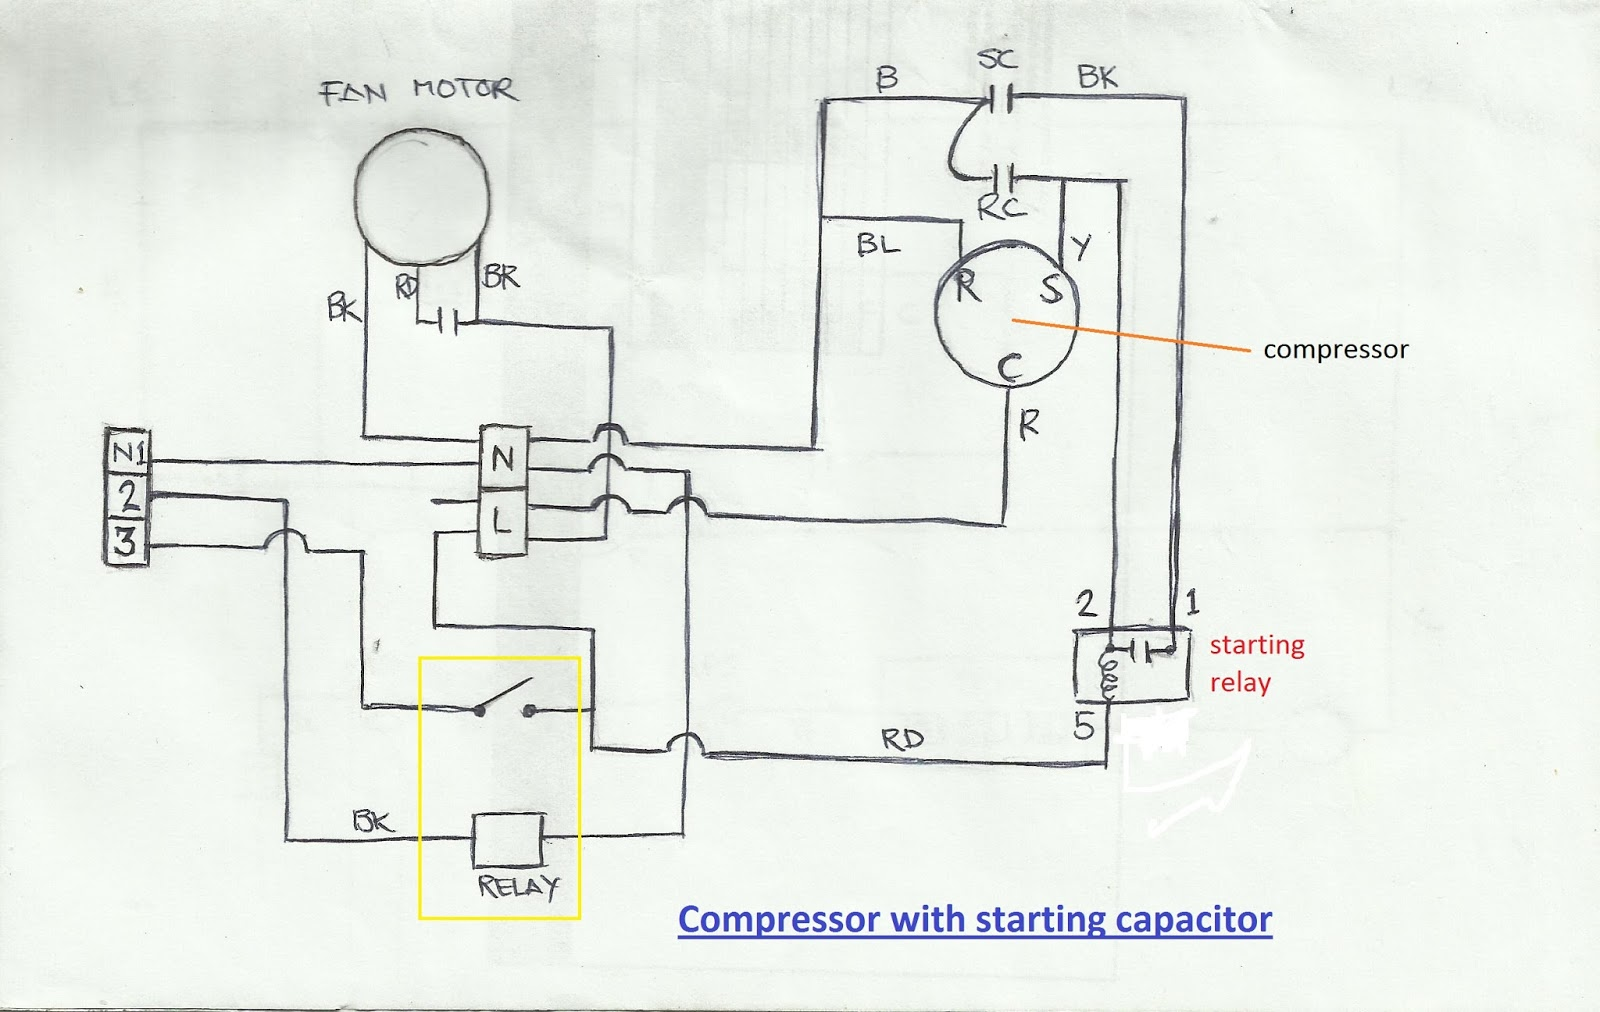 Ac Compressor Wiring Diagram : Carrier start capacitor wiring diagram get free image